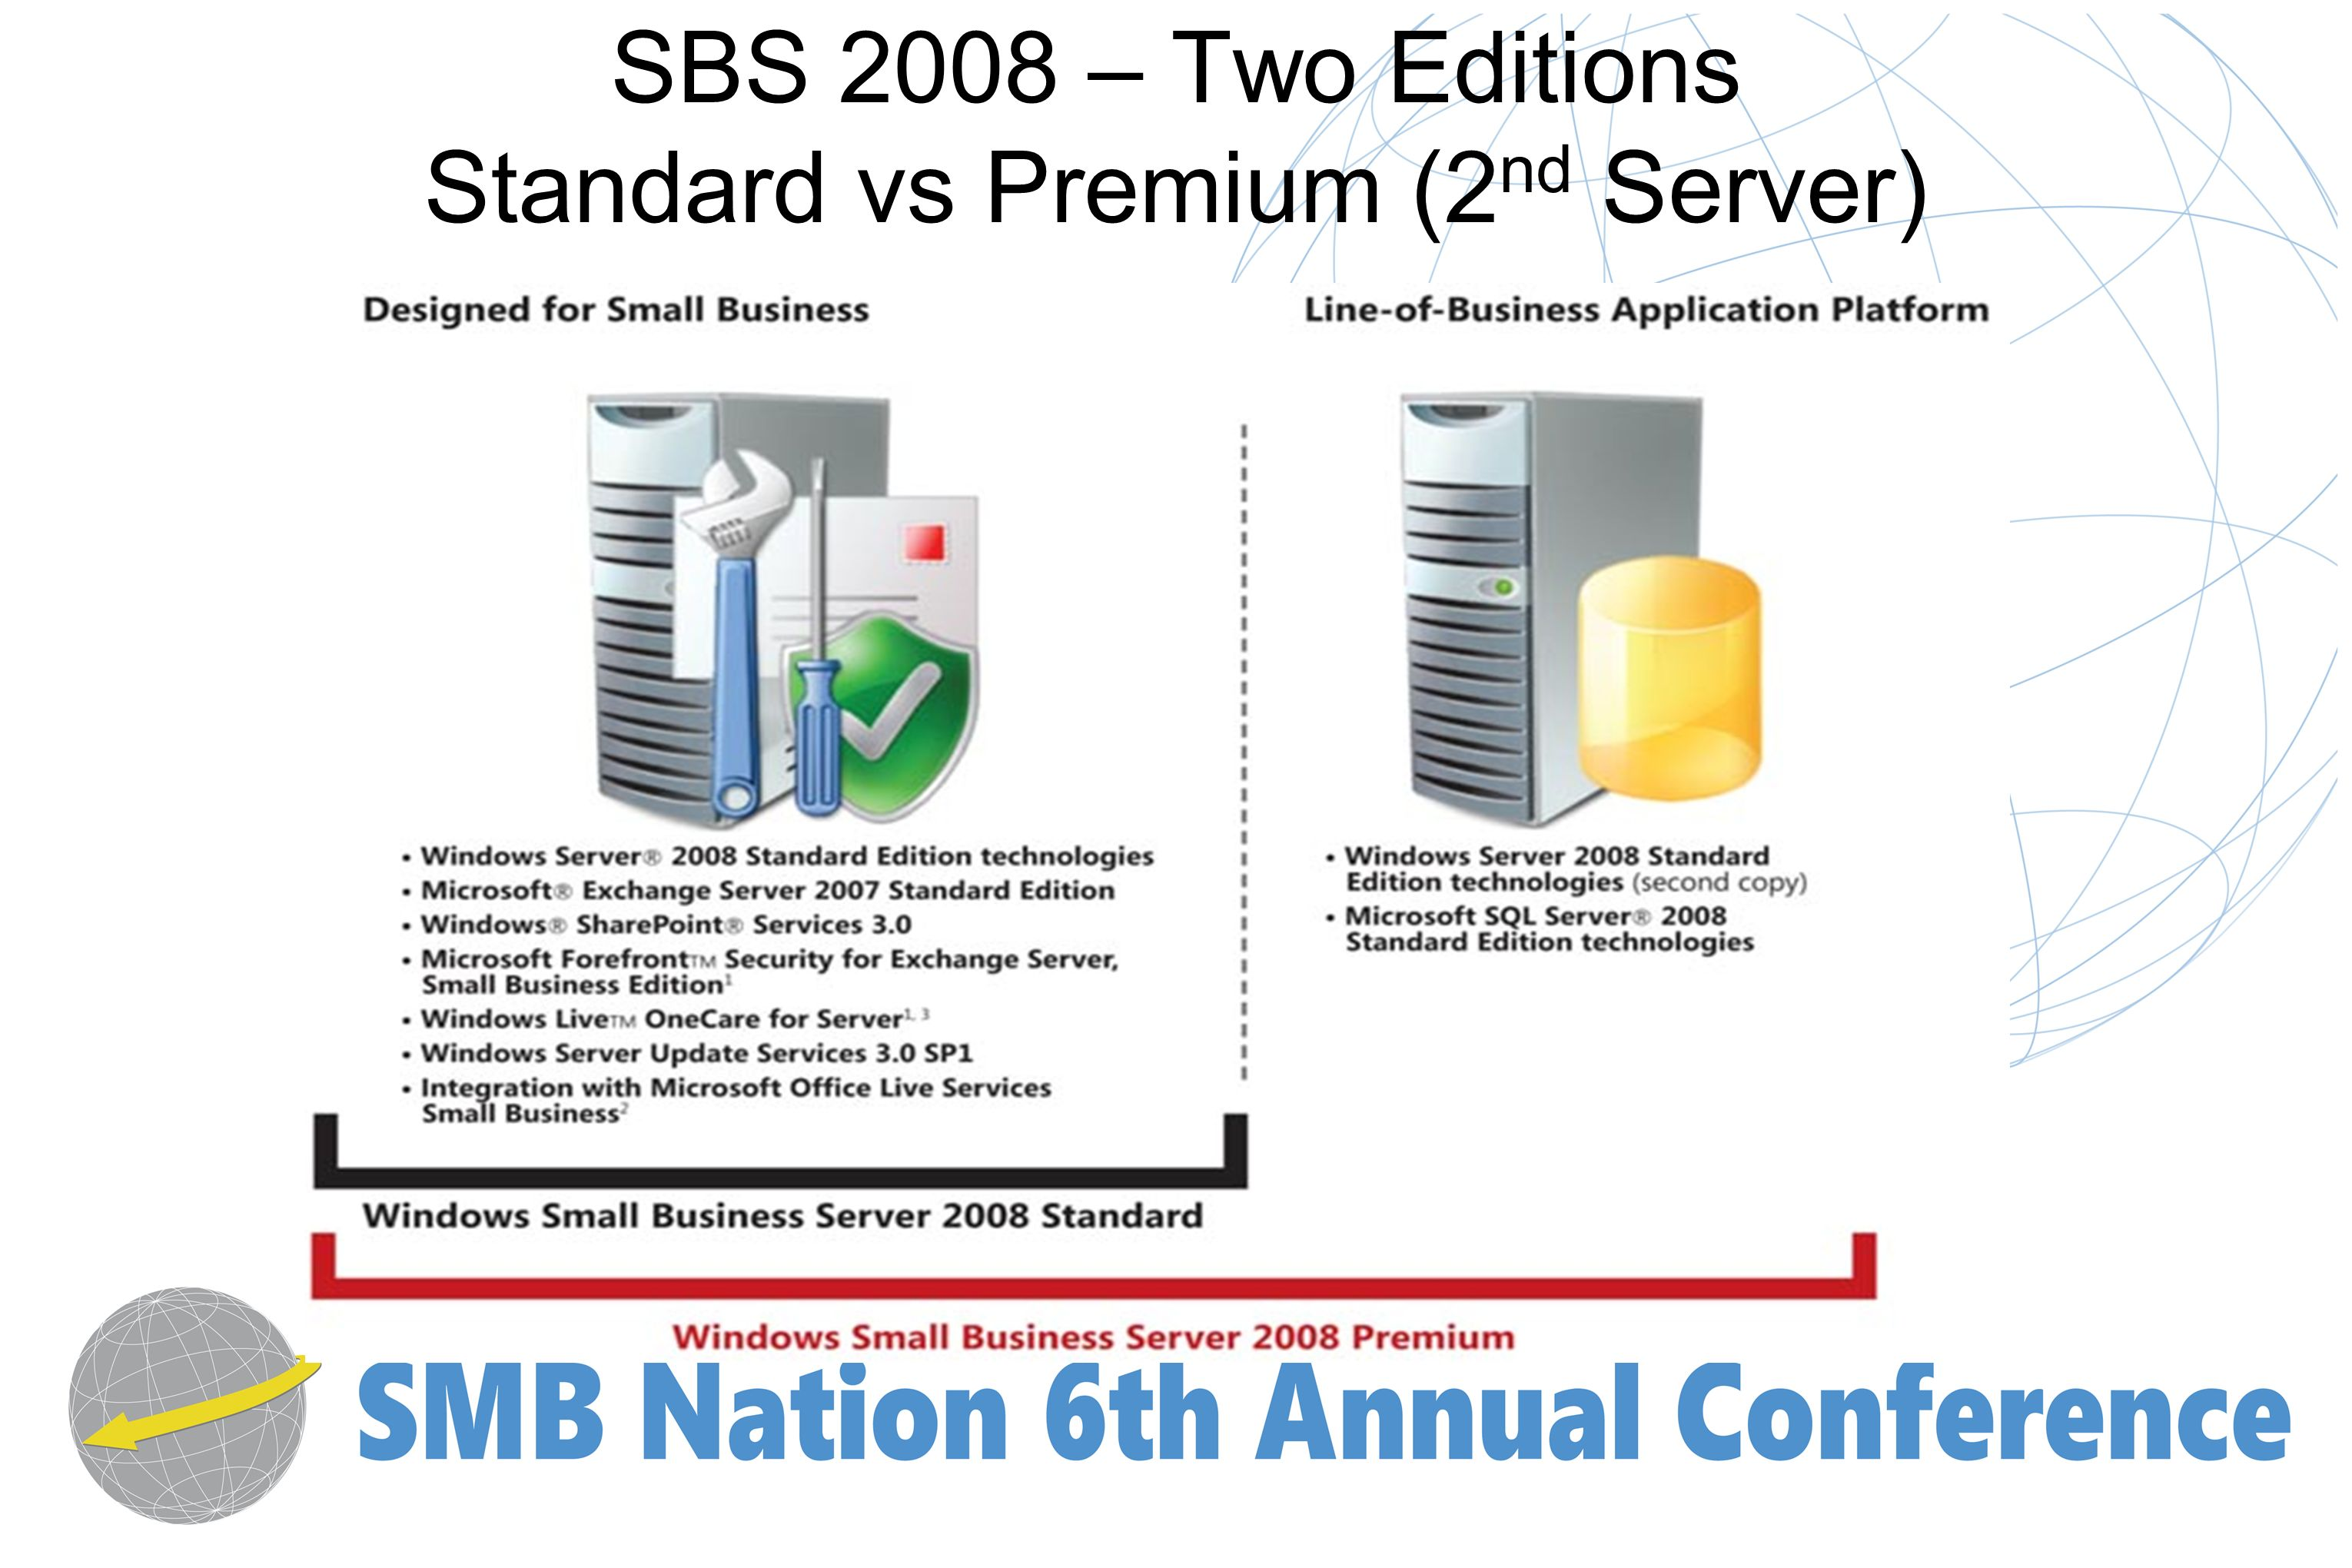 SBS 2008 – Two Editions Standard vs Premium (2 nd Server)